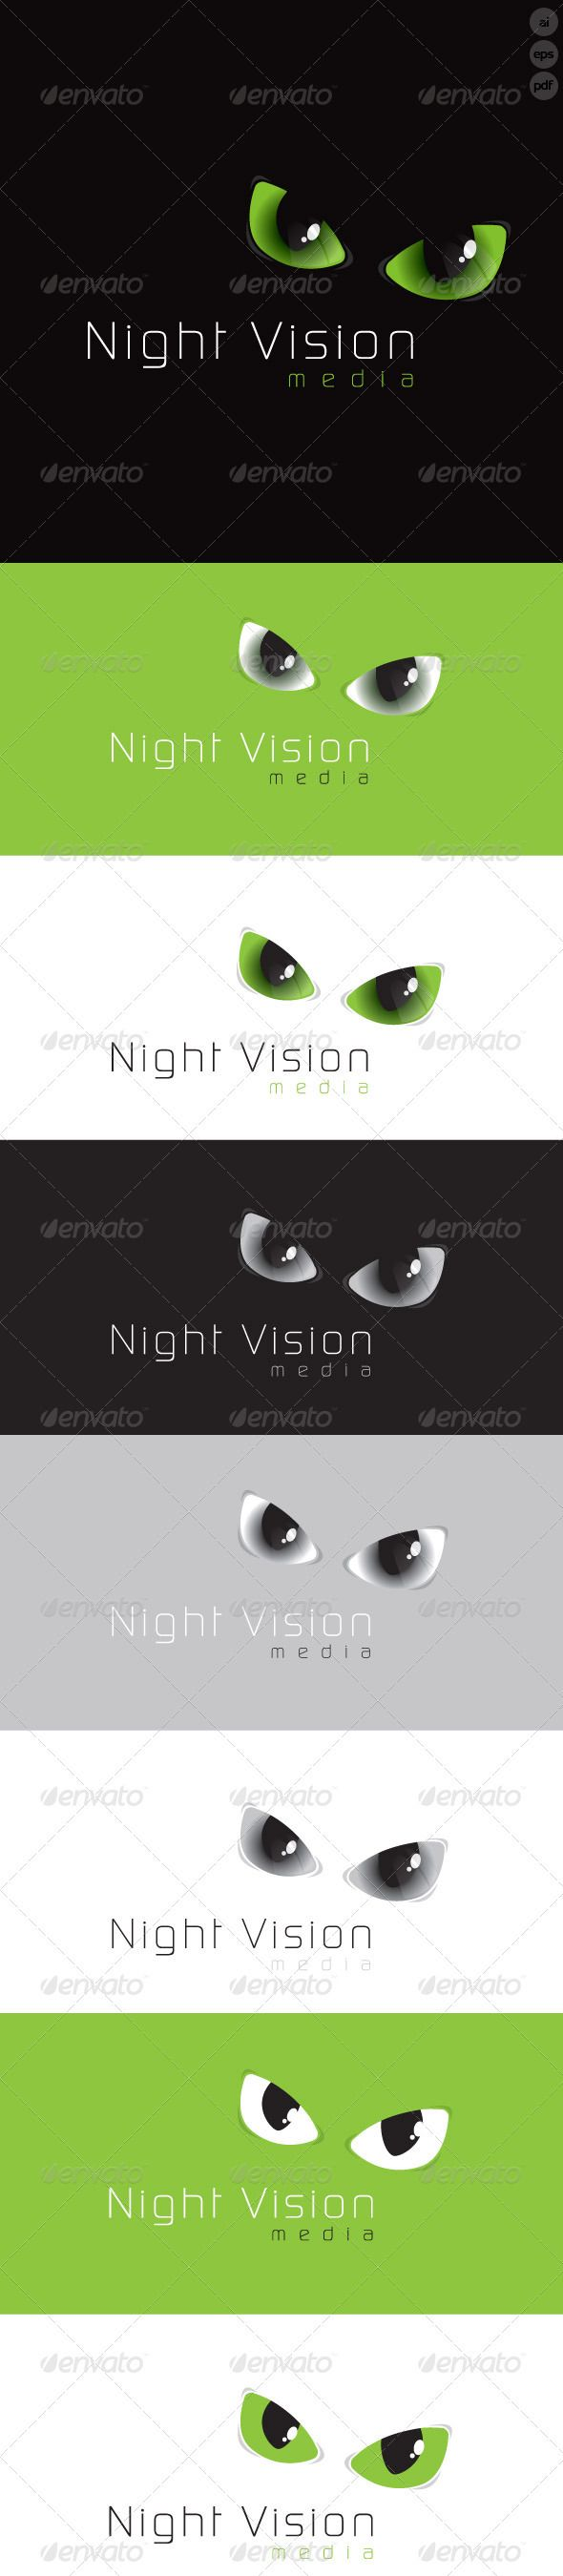 Just love the creepy vibe this is giving out! Weird, right? Night Vision Media Logo is a designed for any company that has a bit of an edge, this logo adds a bit of mystery but still remains very classy. The final files include multiple variations of the Logo. #eyes #night #vision #media #logo #design